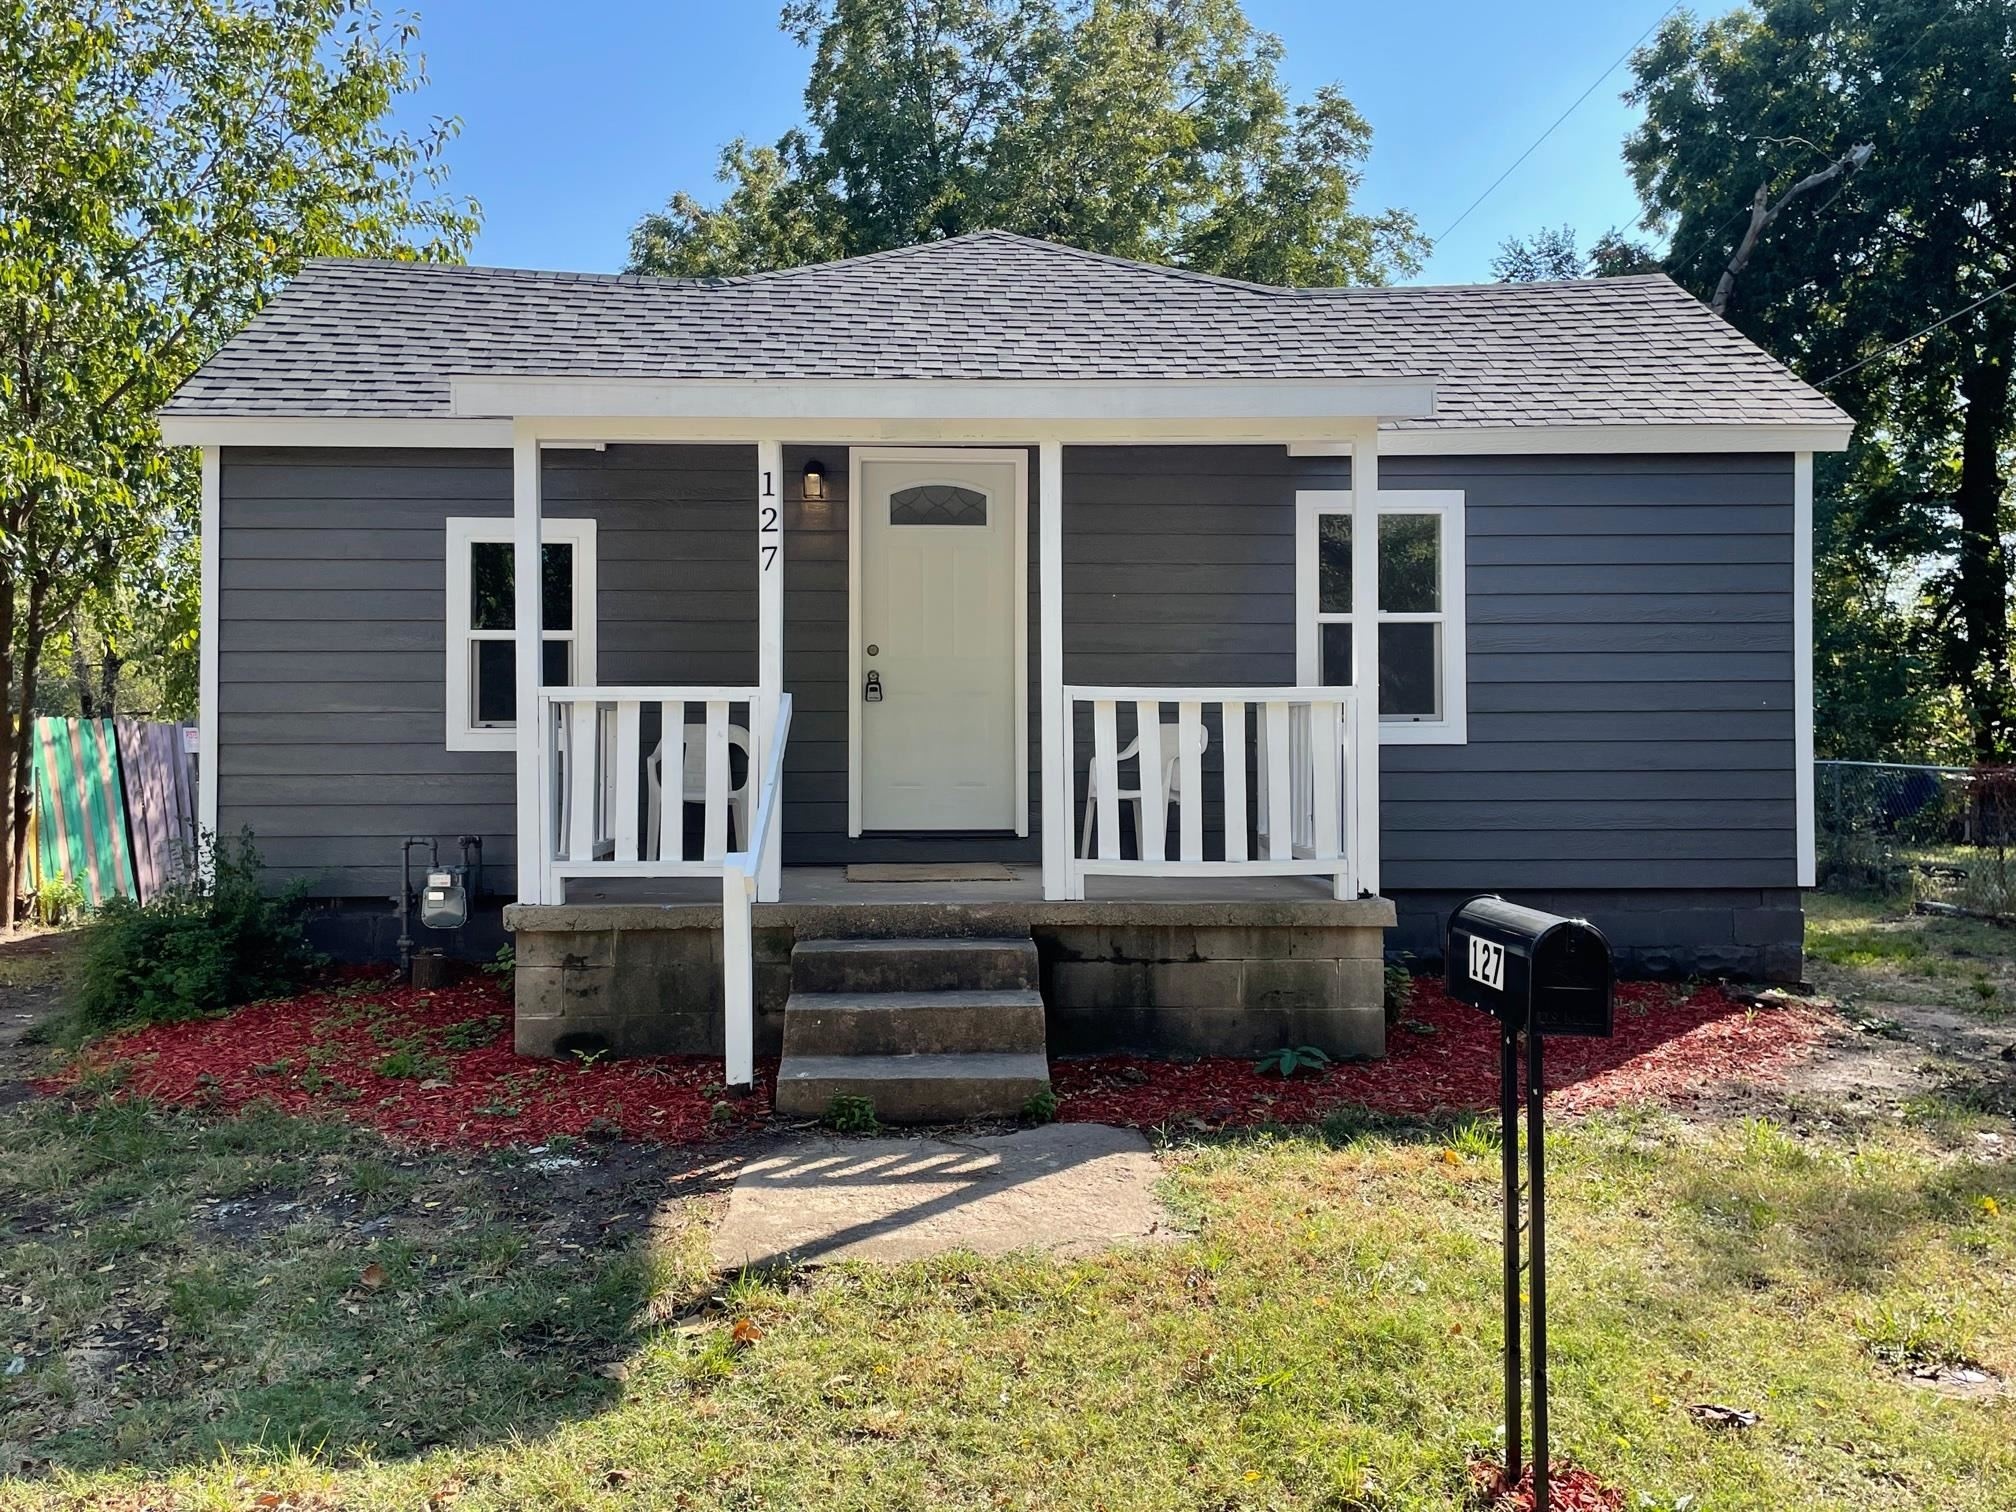 Come check out this cute 2 bedroom, 1 bath house! This home has been brought up to the 2021 (Electri